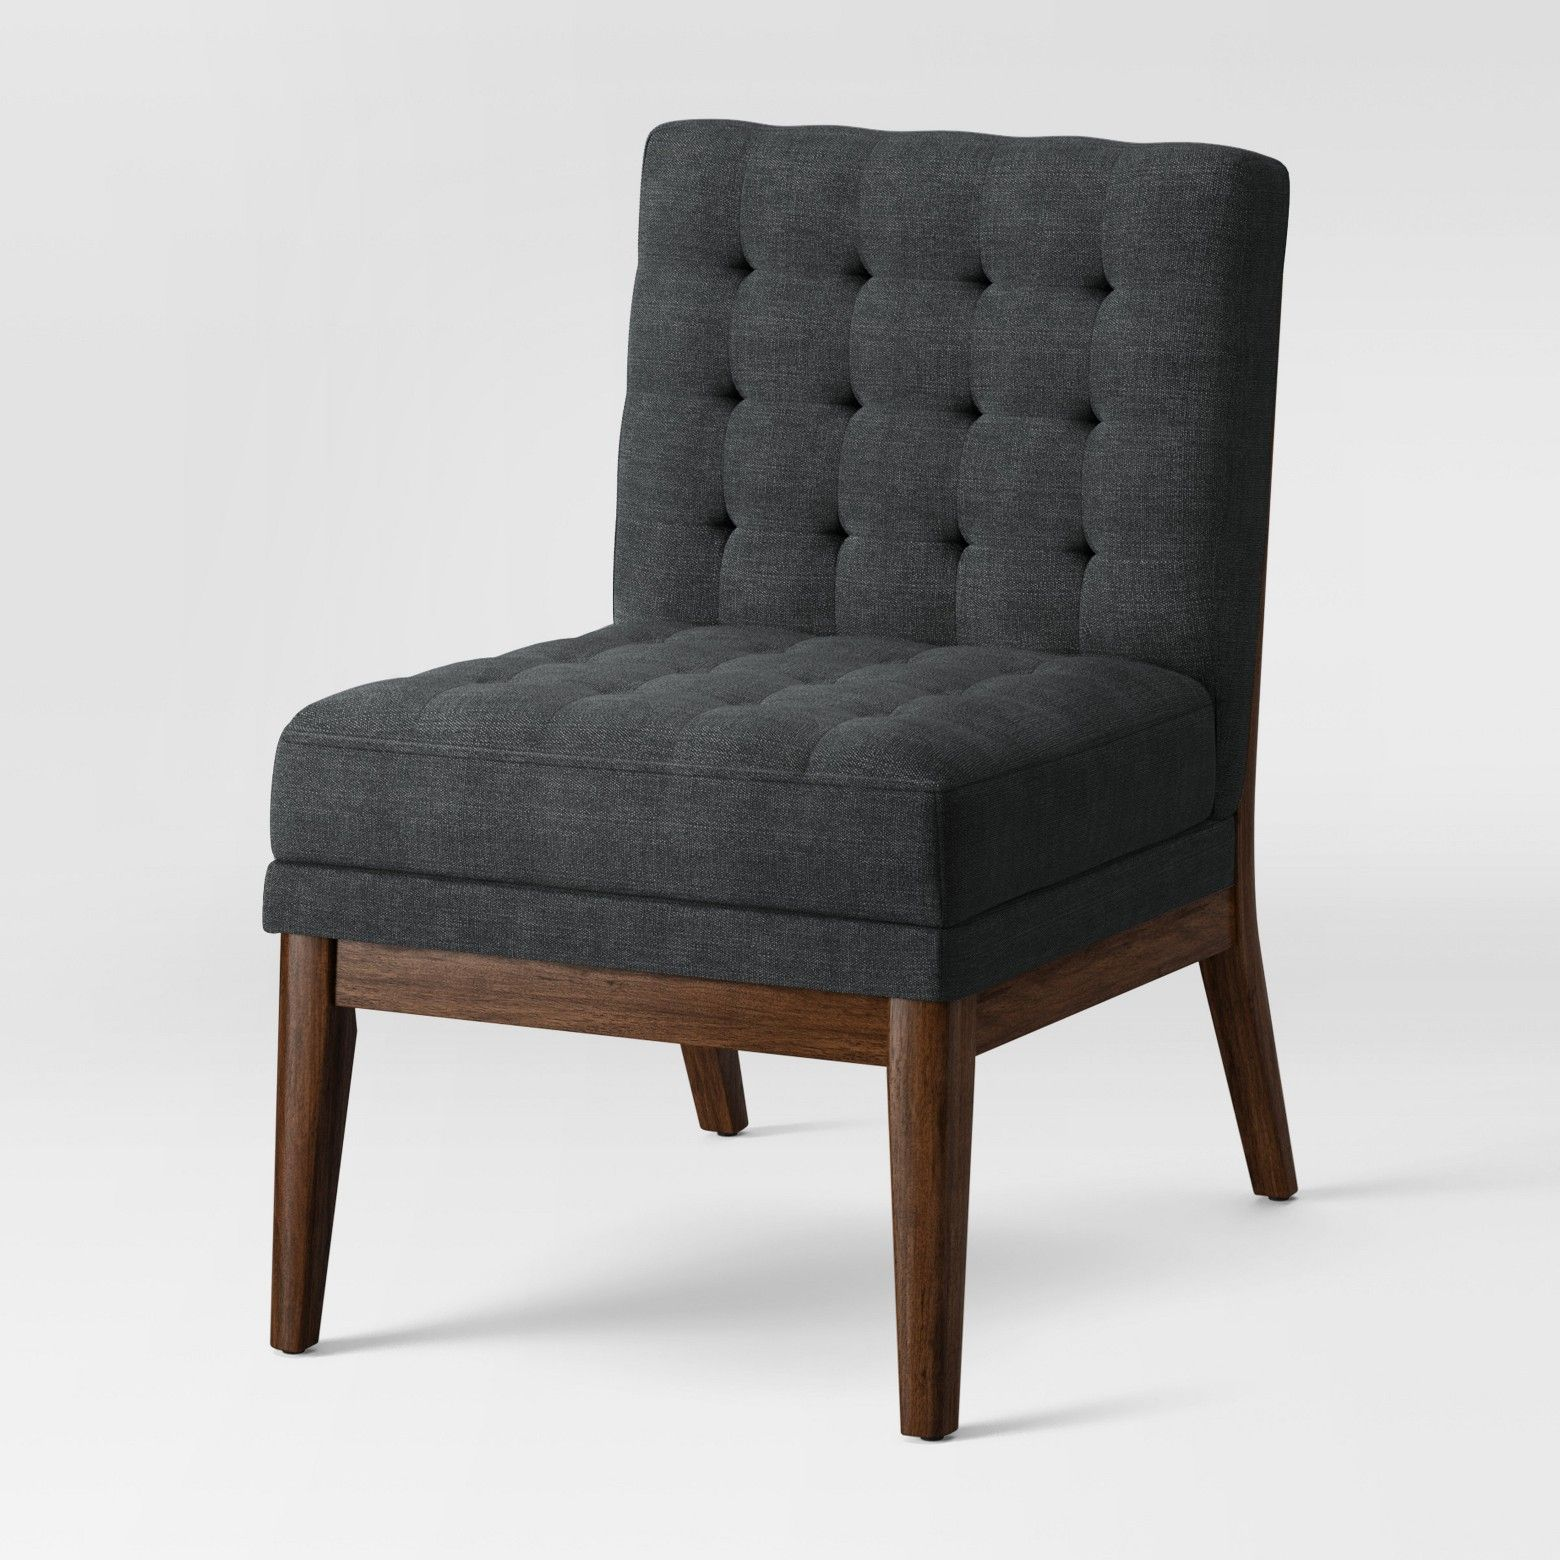 Wondrous Newark Tufted Slipper Chair With Wood Base Navy Project 62 Evergreenethics Interior Chair Design Evergreenethicsorg